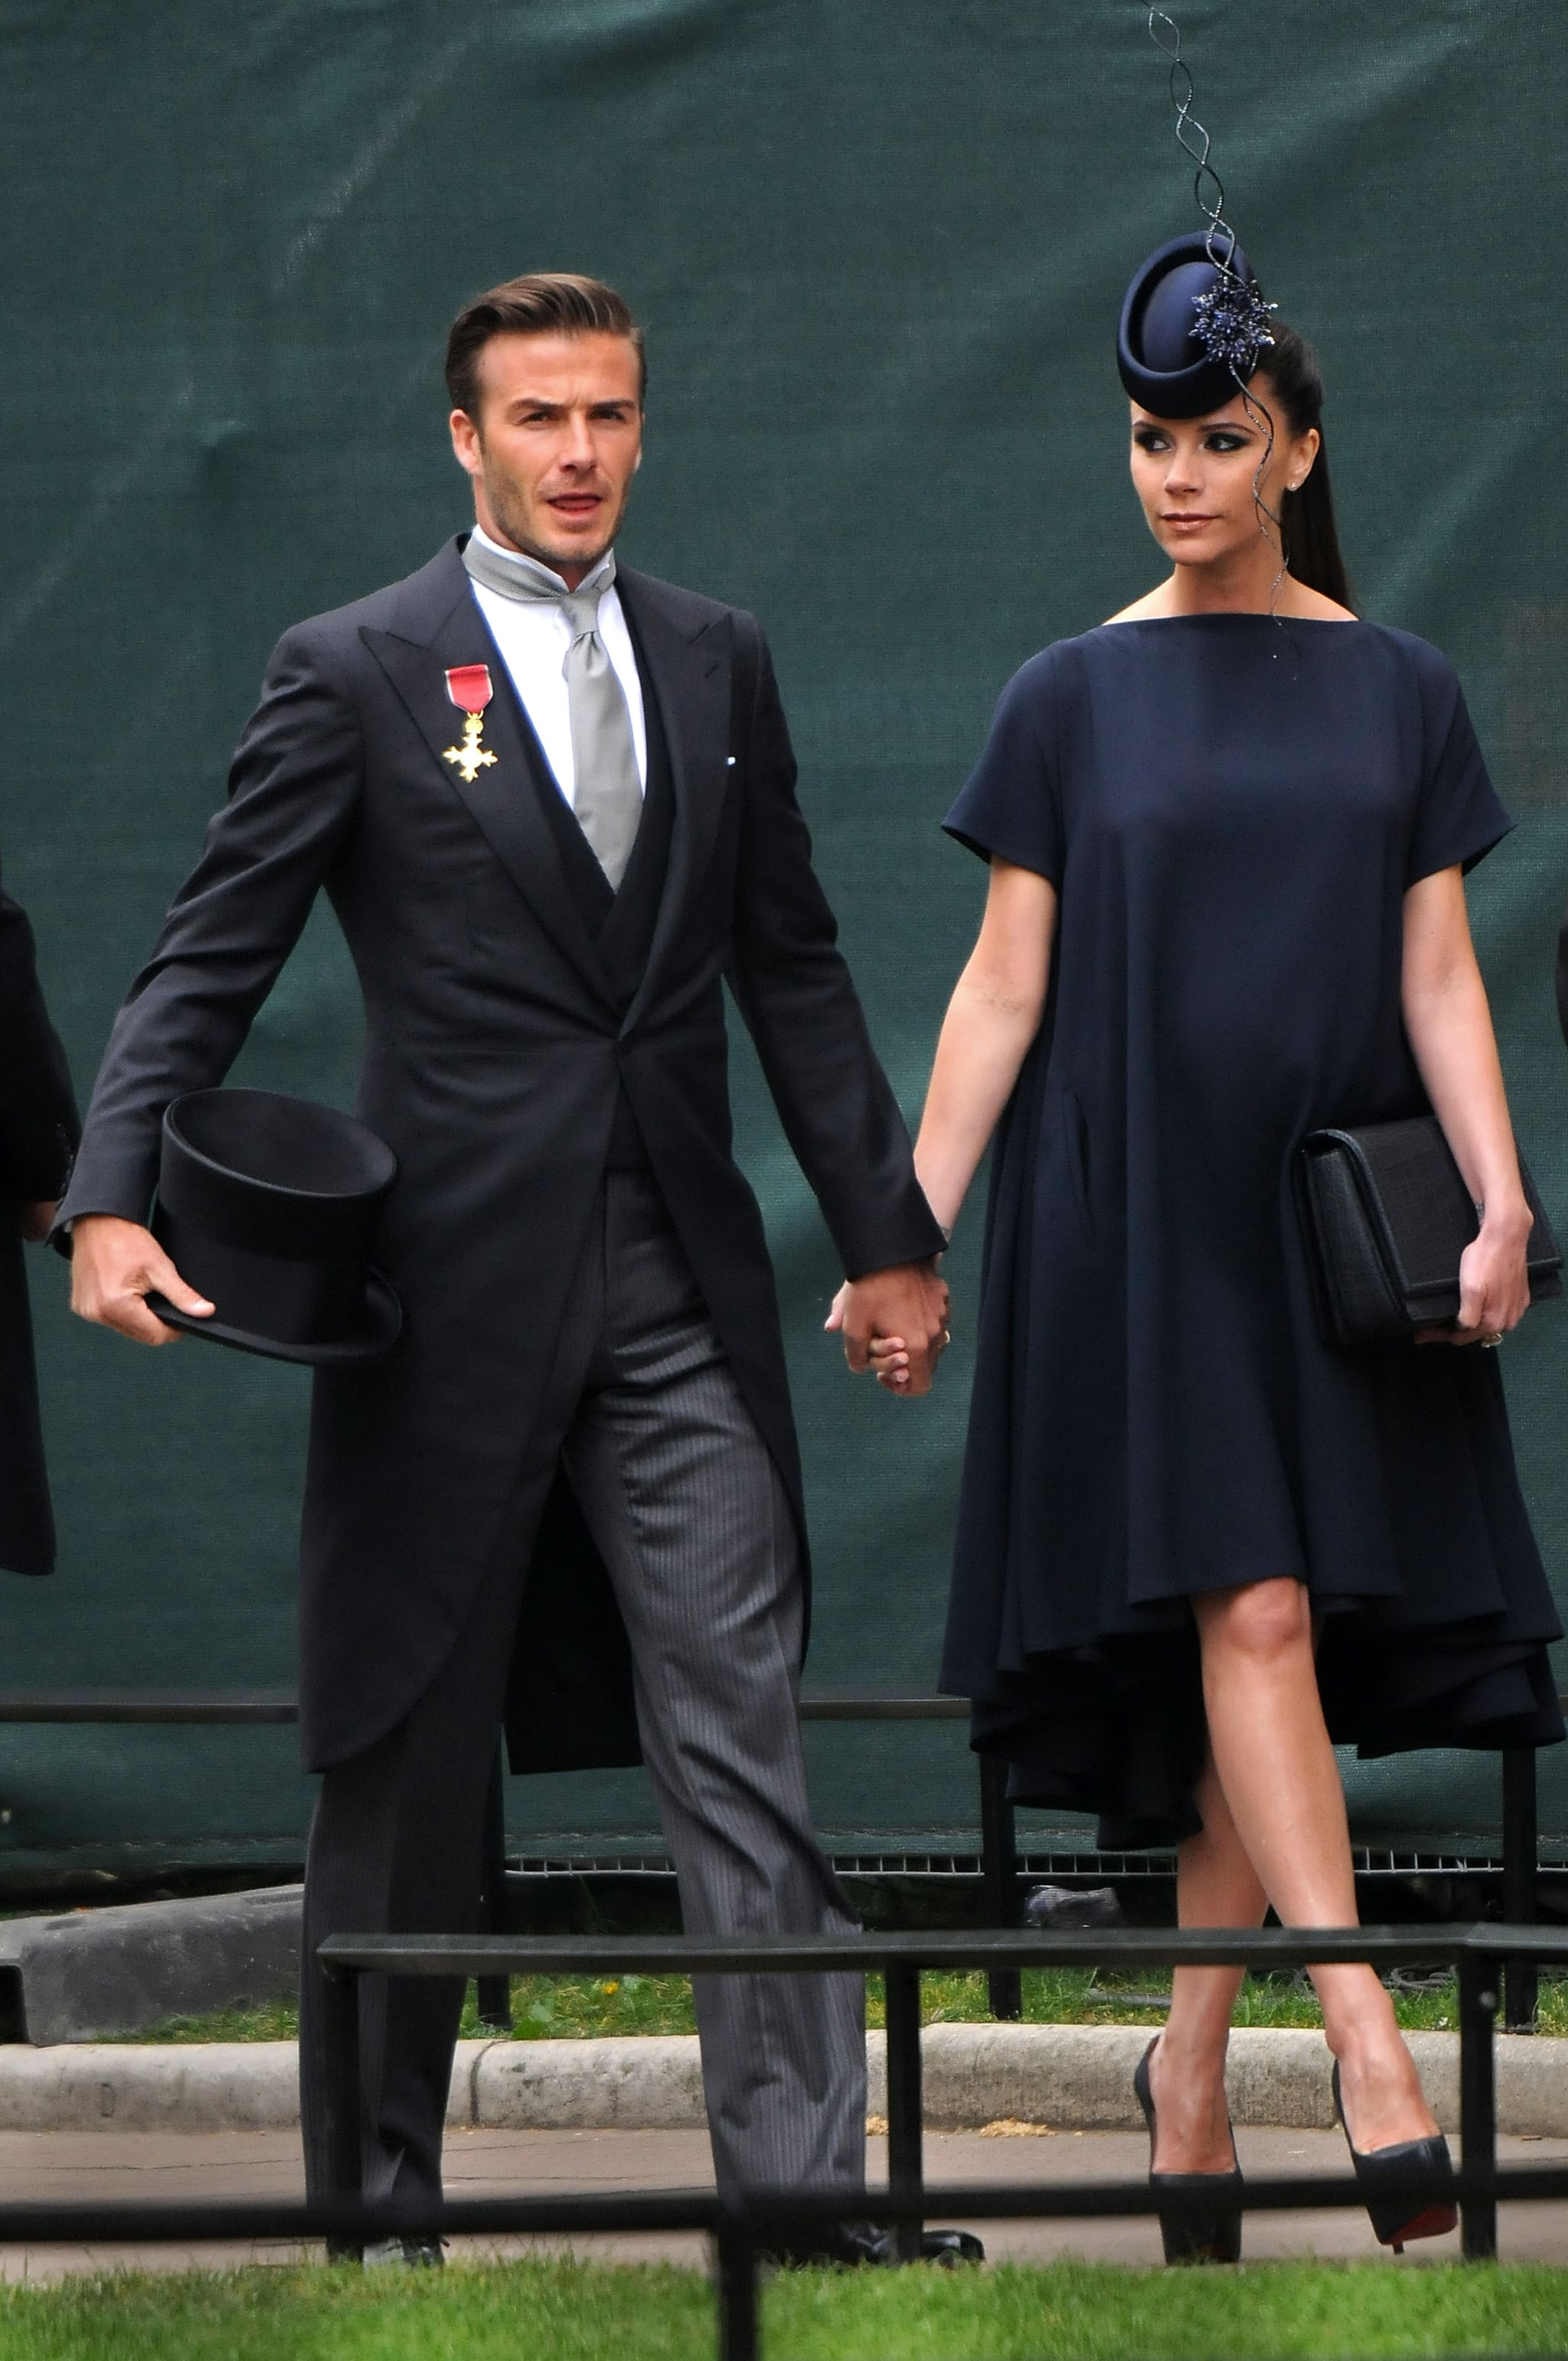 David and Victoria Beckham made an entrance at the April 2011 royal nuptials of Prince William and Kate Middleton in London.